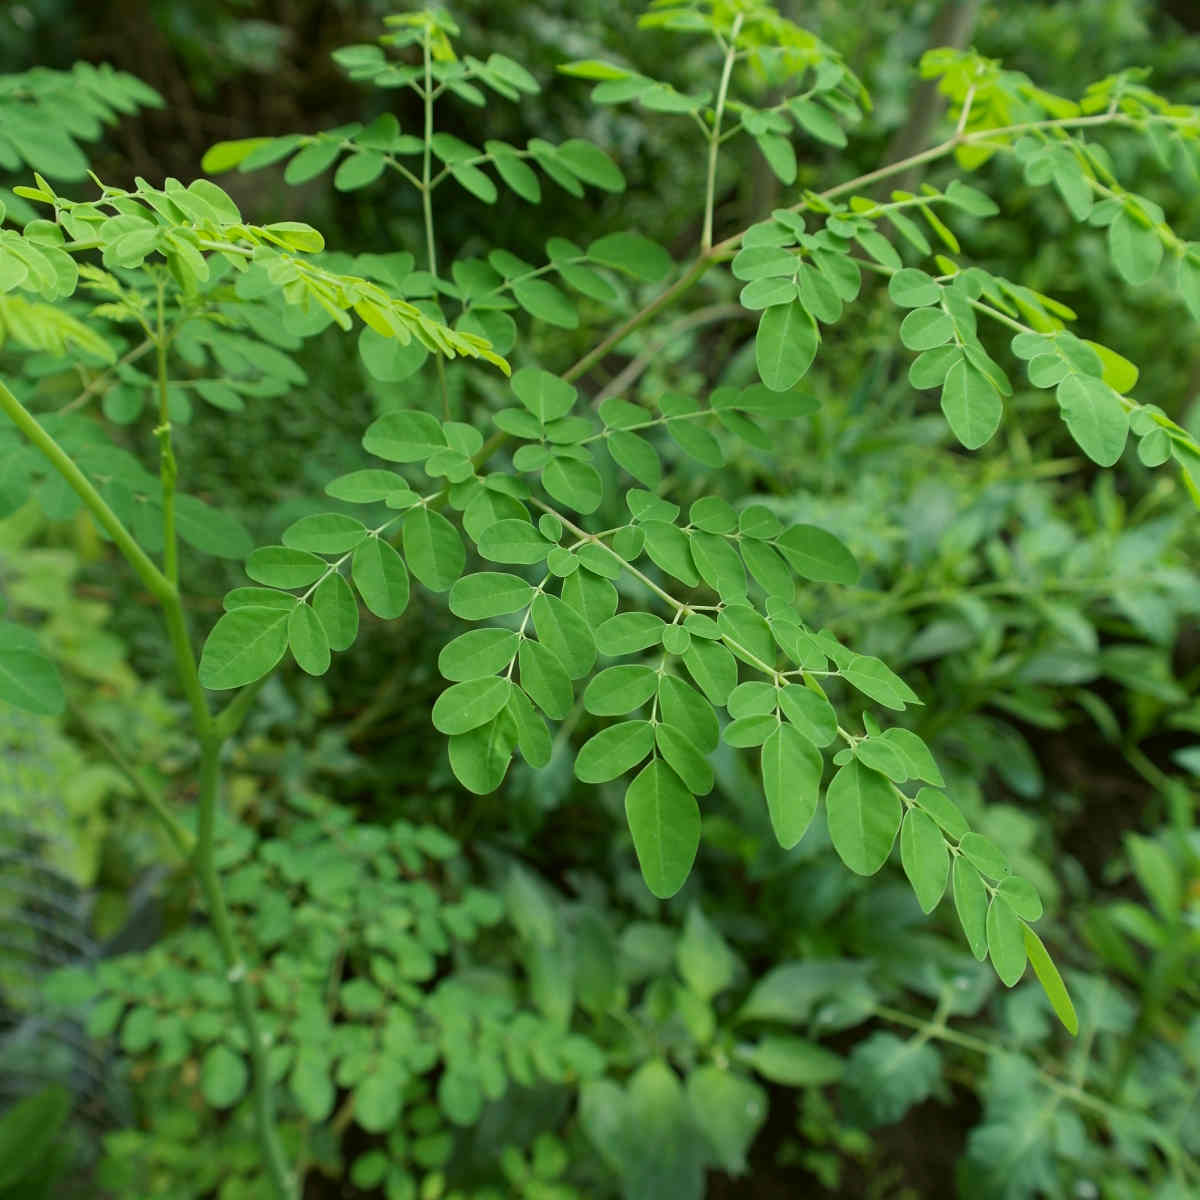 close up of leaves of Moringa tree | The Battle Of The Greens: Moringa vs. Matcha | matcha and moringa tea | super greens